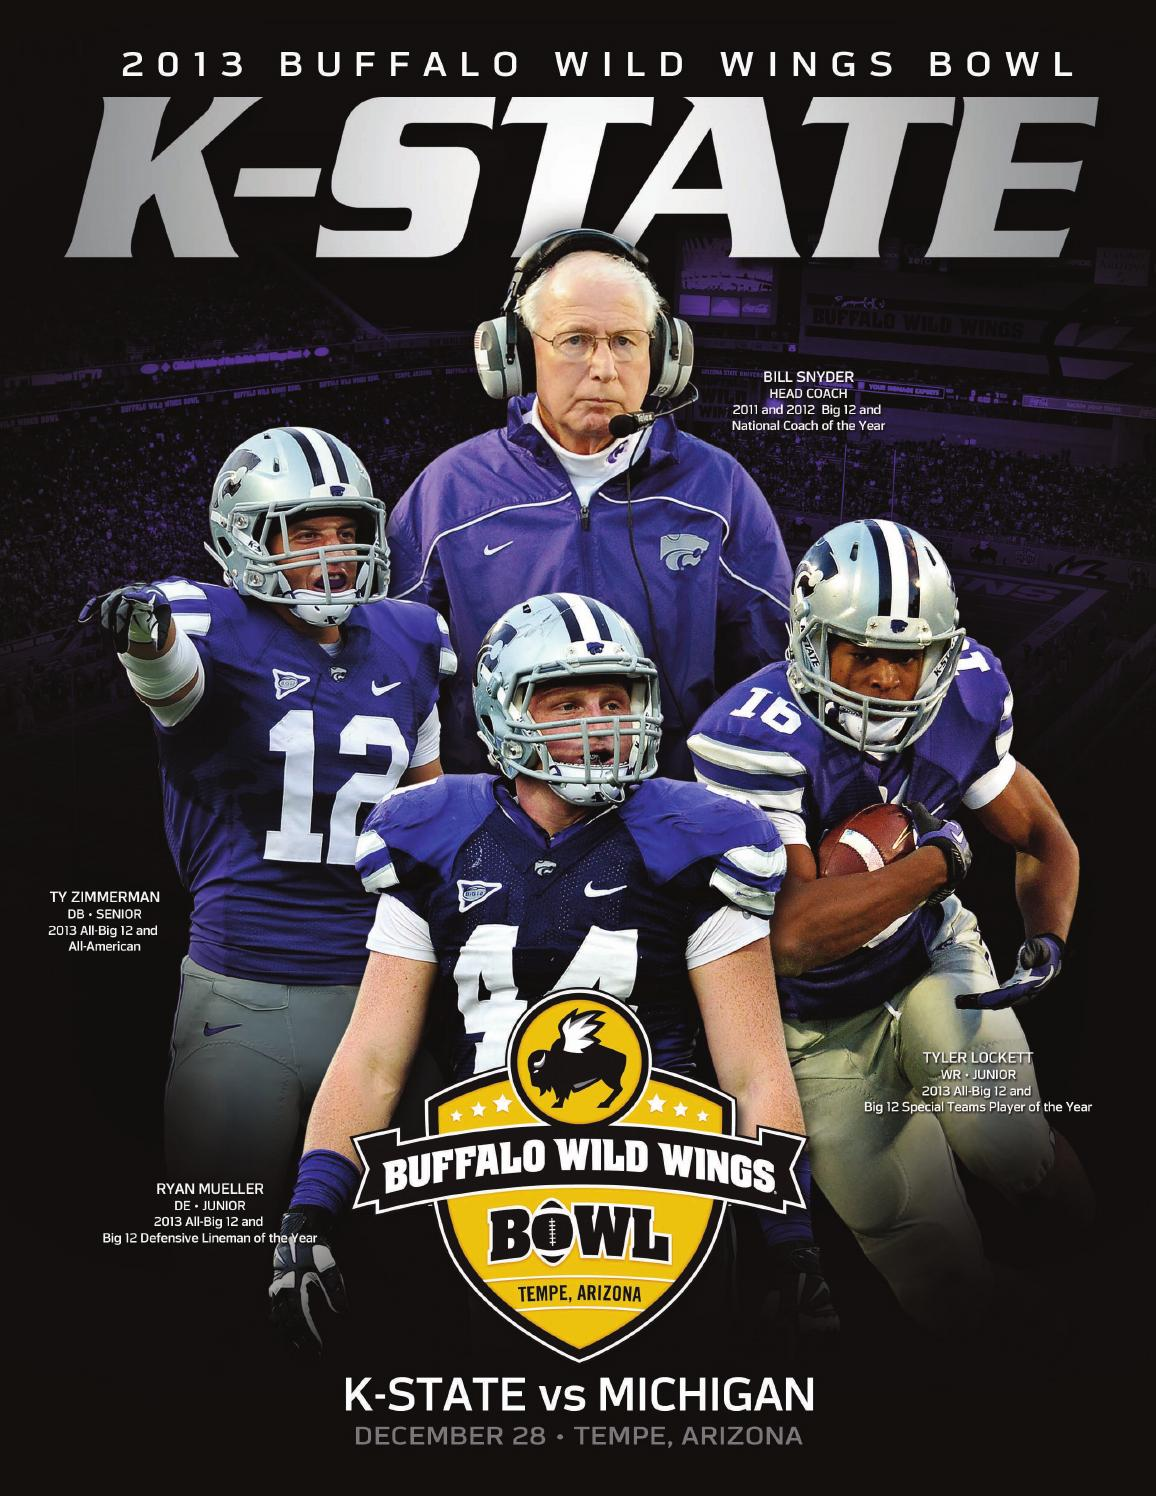 2013 K State Buffalo Wild Wings Bowl Media Guide By K